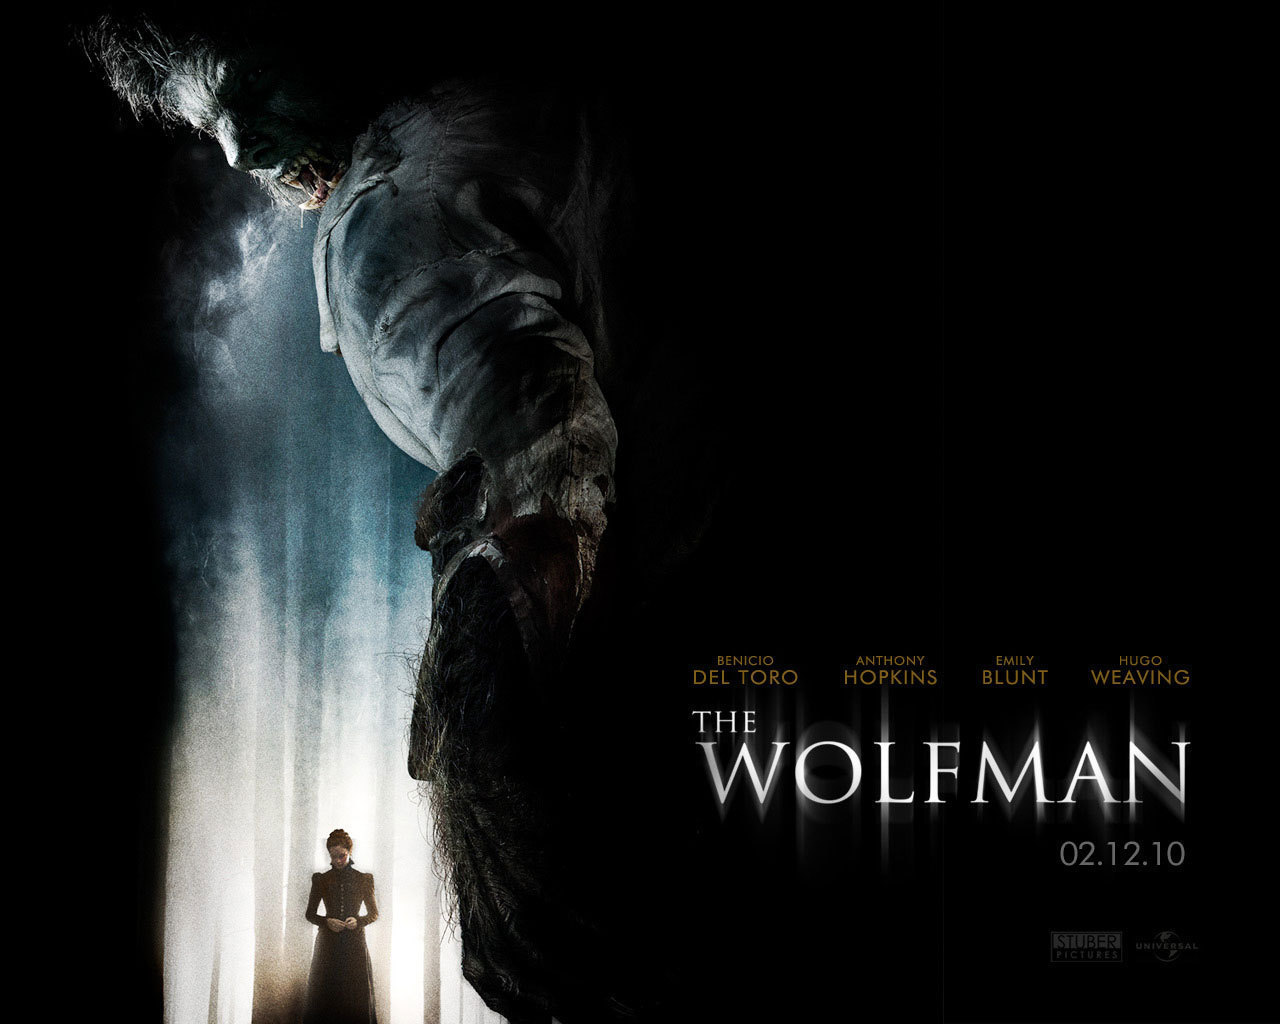 The Wolfman (2010) - The Wolfman (2010) Wallpaper ...